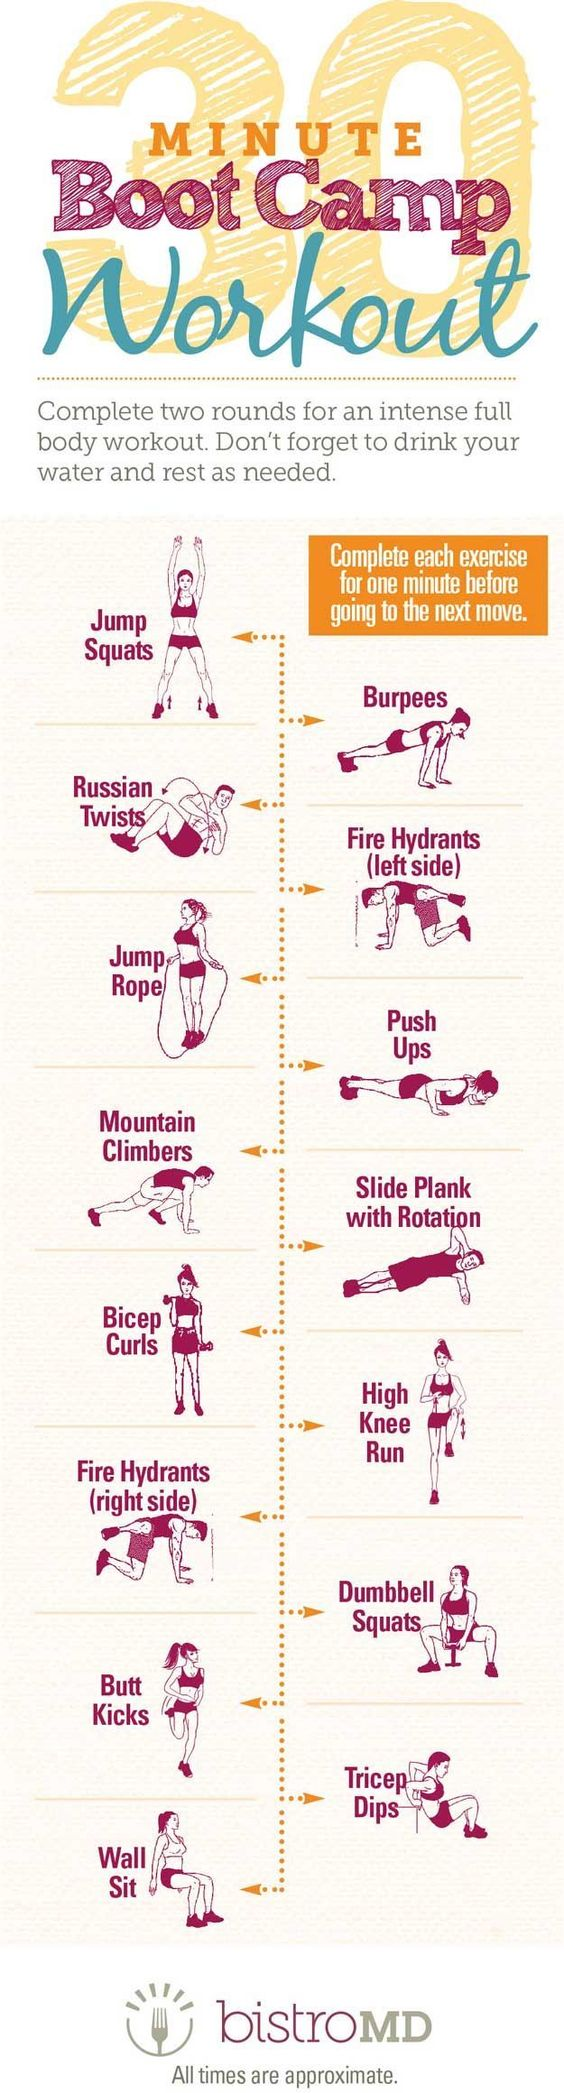 30-Minute Boot Camp Workout | 14 Best Fitness Workouts for Head to Toe Toning, check it out at makeuptutorials.c...